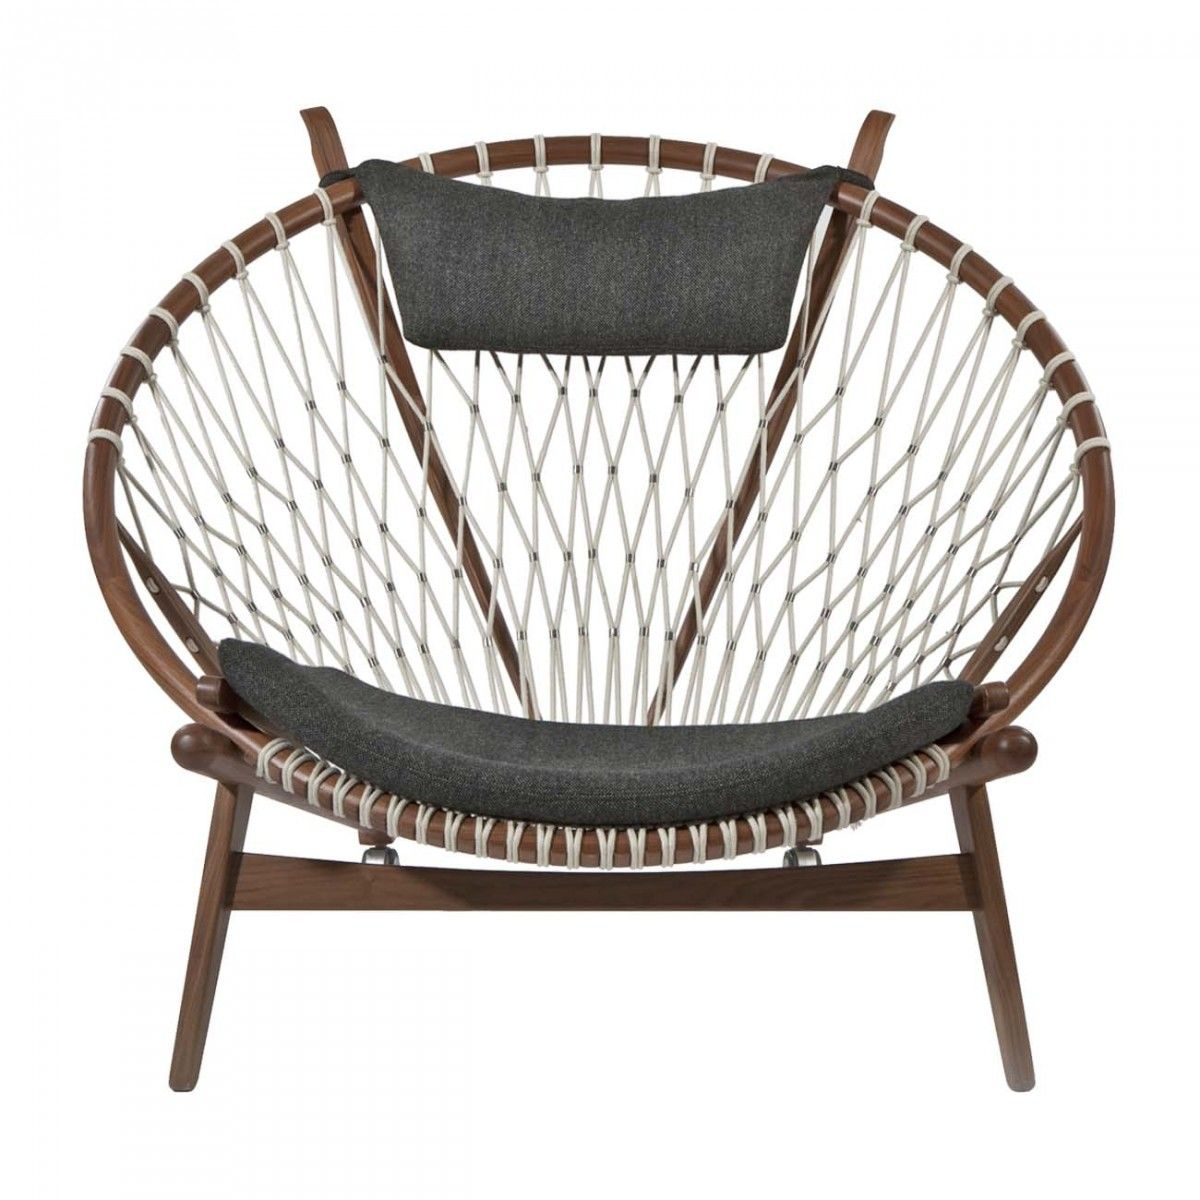 Co Chairs Circle Stool Chair Price Philippines Quotcircle Quot Designed By Hans J Wegner Classic